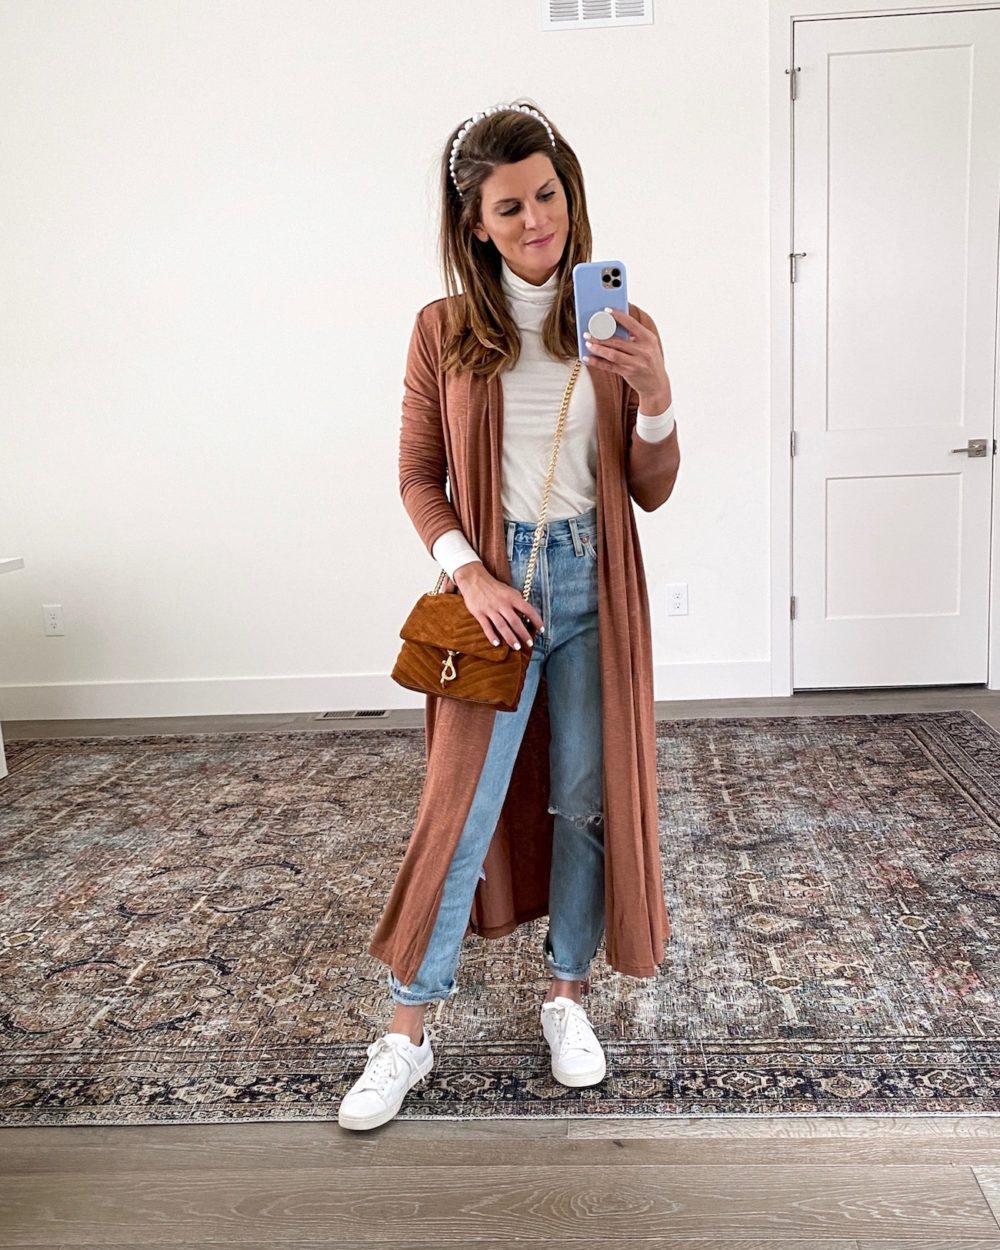 Brighton Keller wearing white turtleneck, rust duster, mom jeans and white sneakers